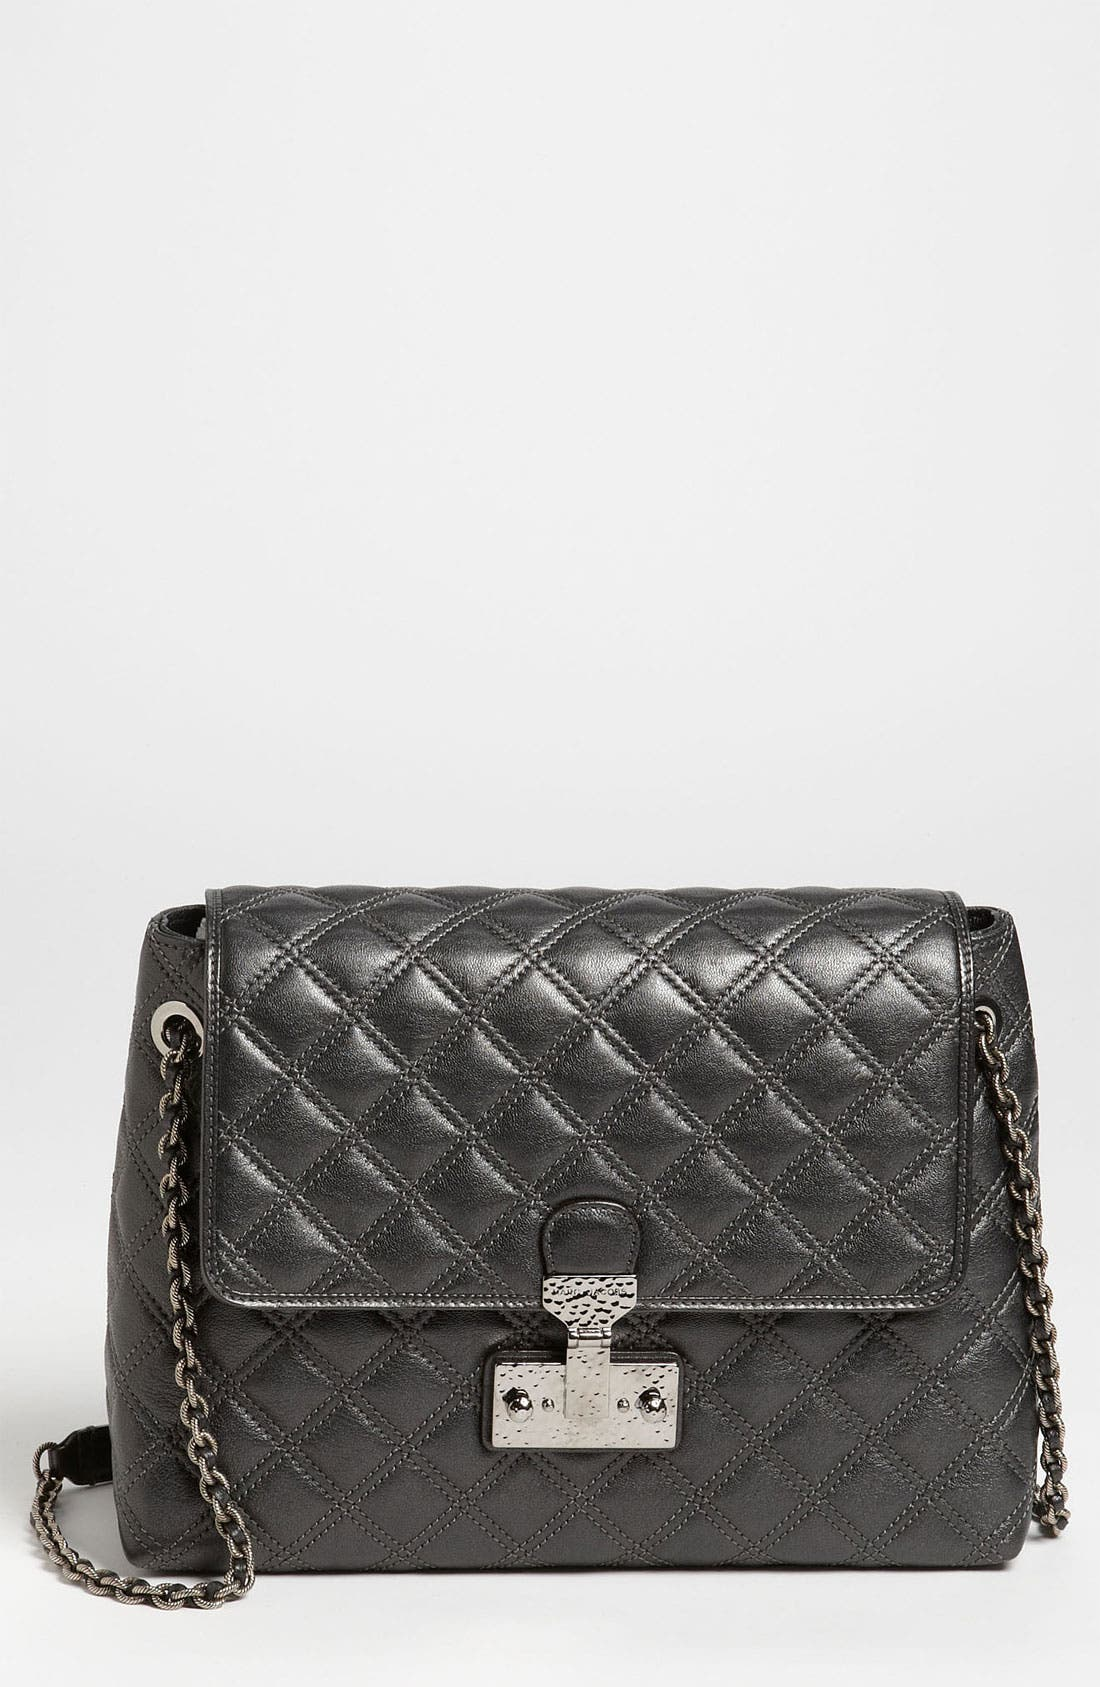 Main Image - MARC JACOBS 'Baroque XL Single' Leather Shoulder Bag